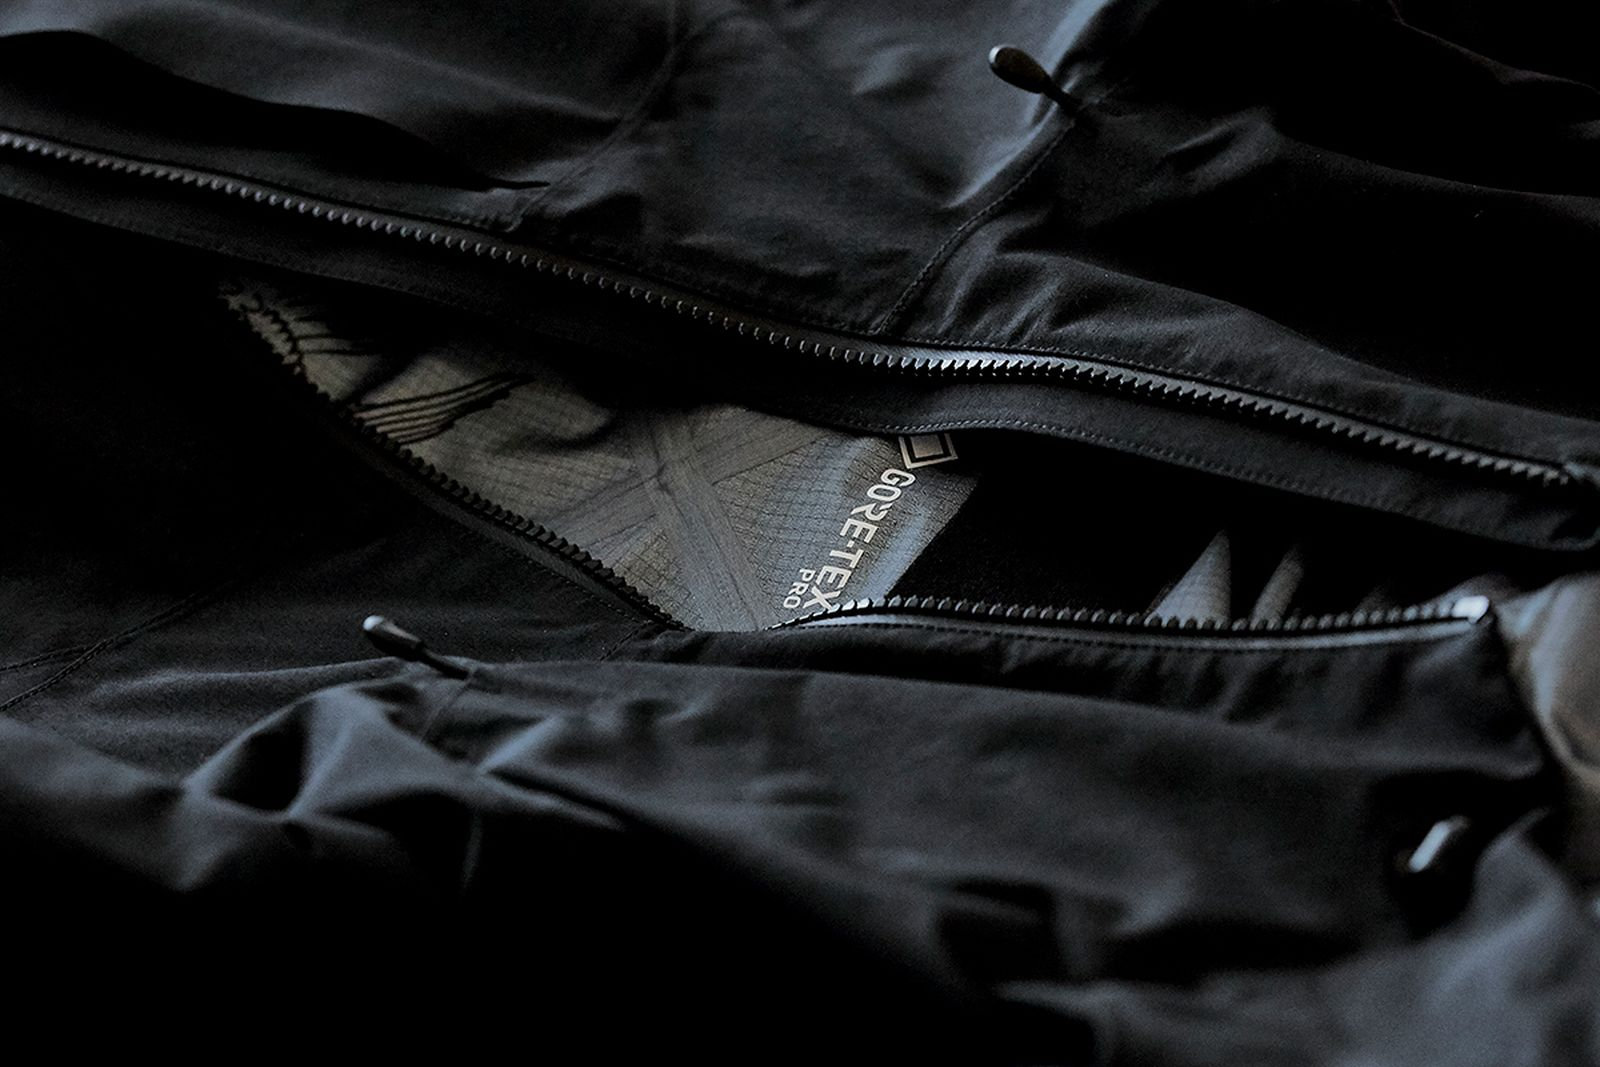 11-tilak-acronym-gore-tex-evolution-jacket-detail